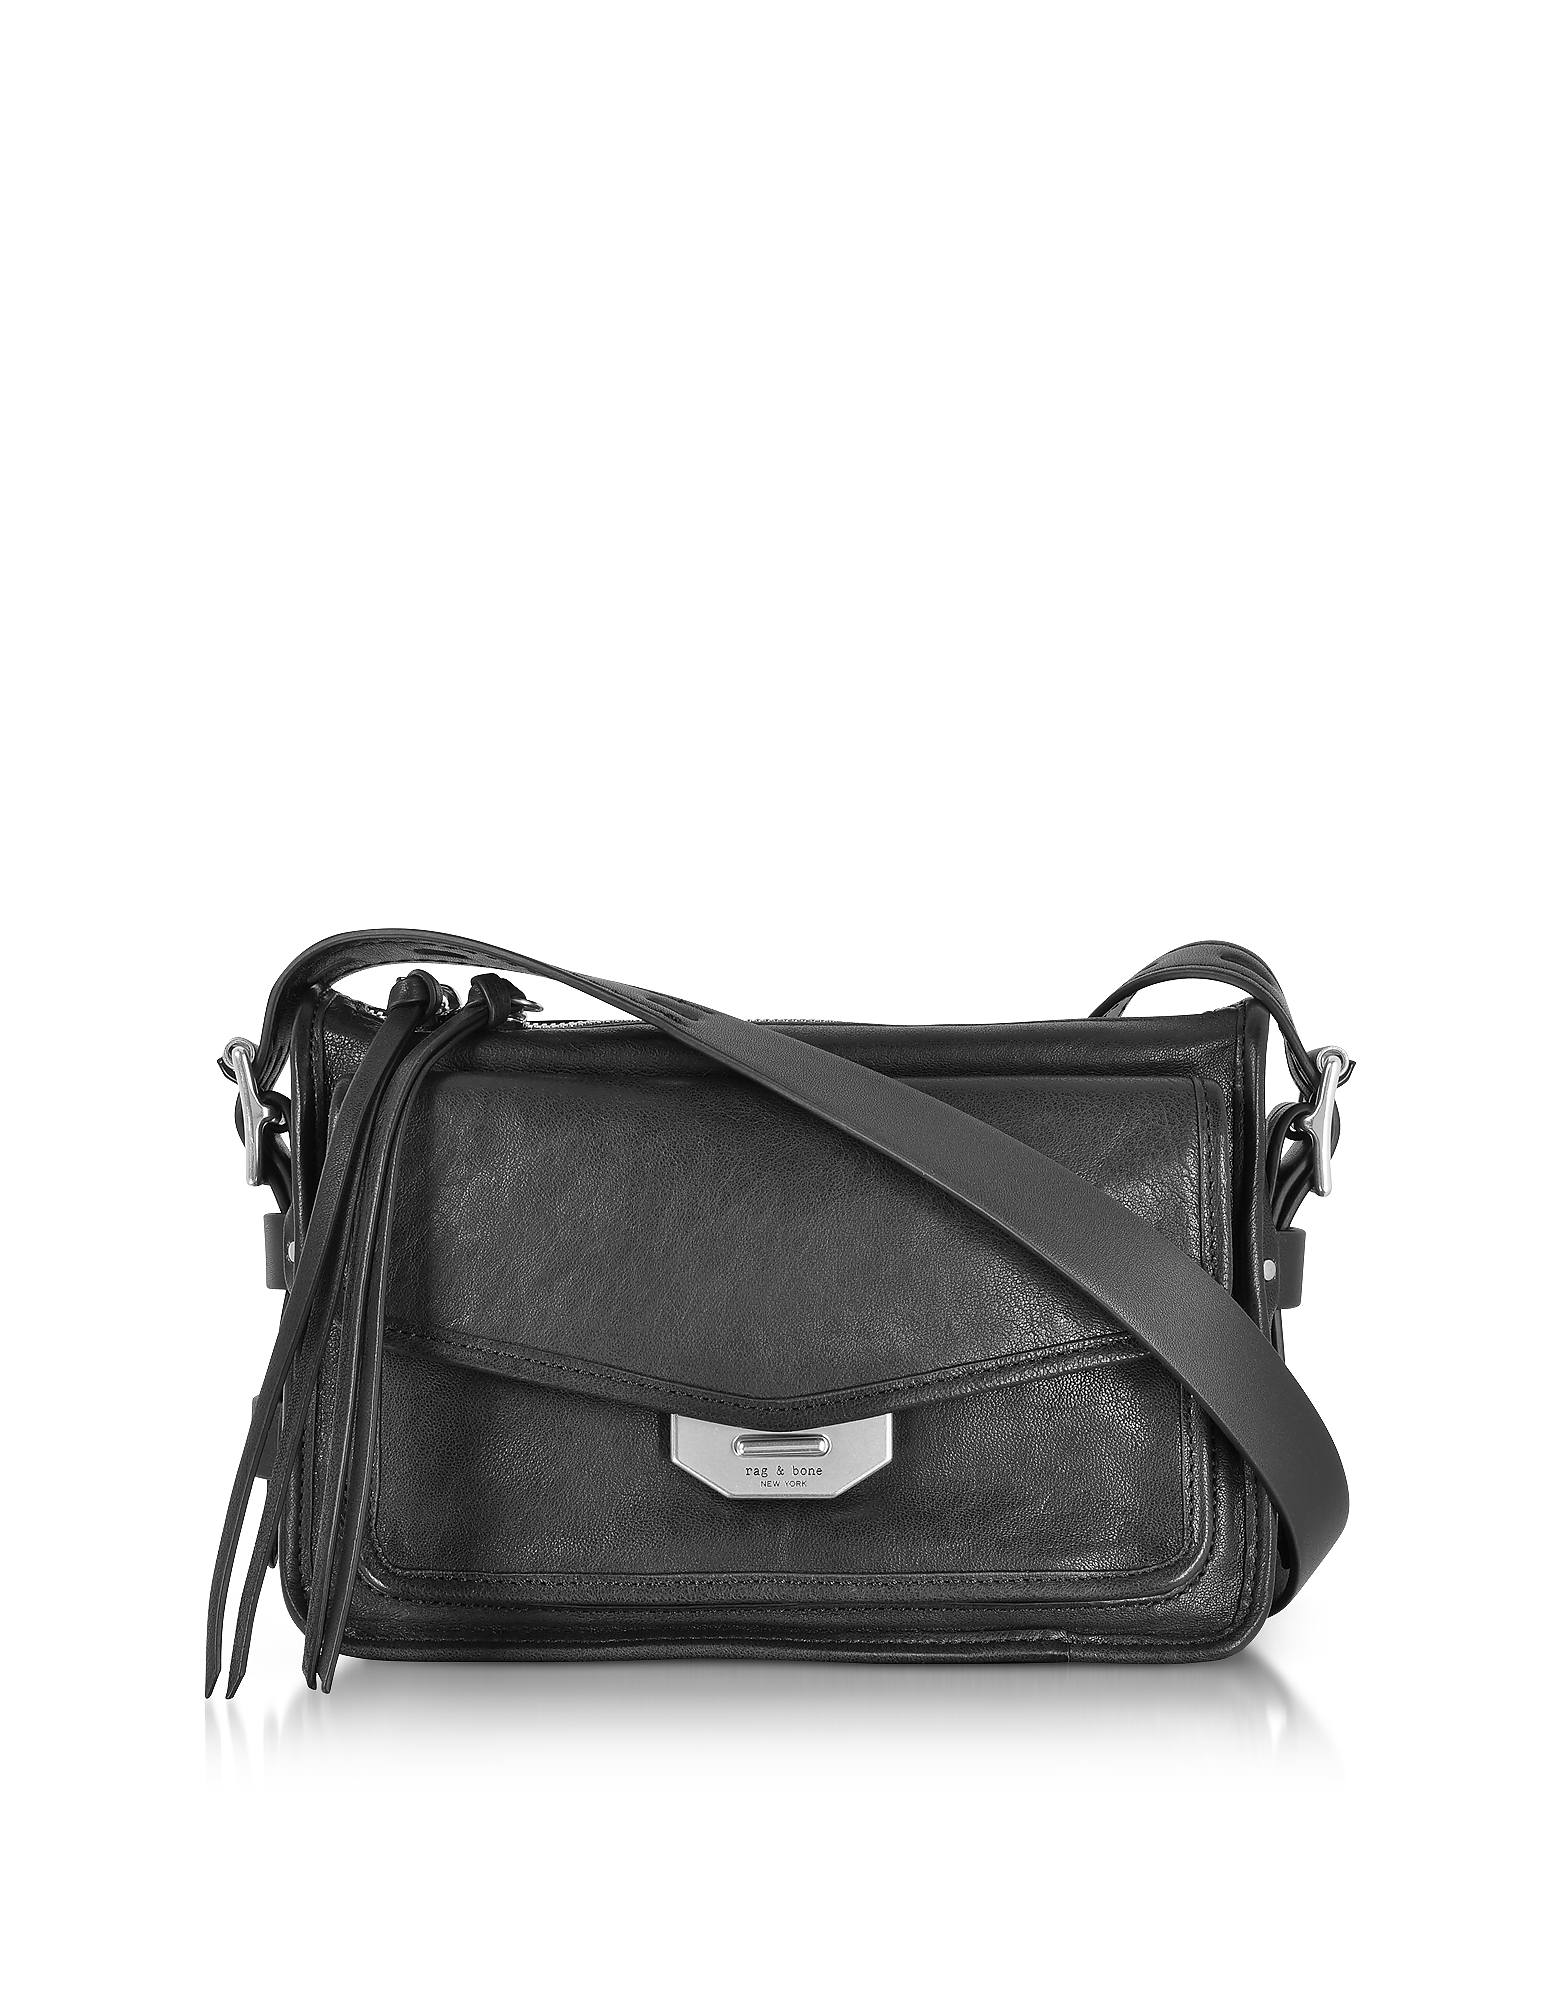 Rag & Bone Handbags, Black Leather Small Field Messenger Bag